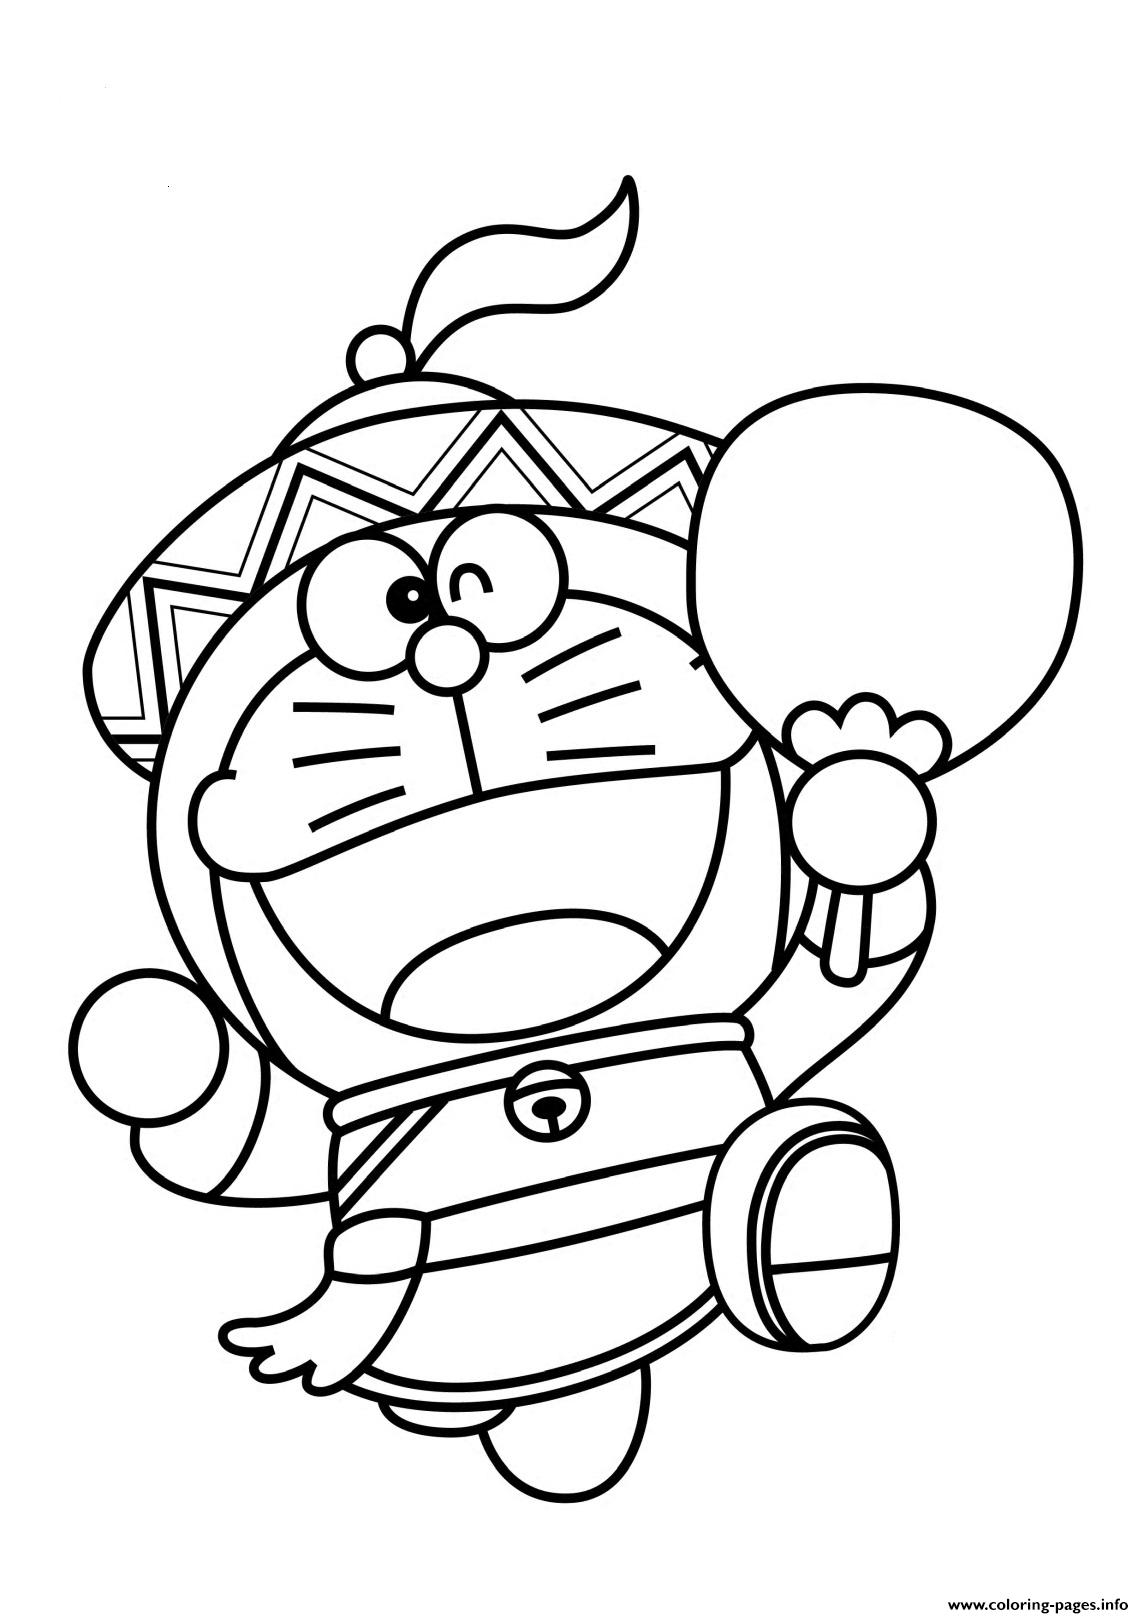 Doraemon As Chinese 6823 Coloring